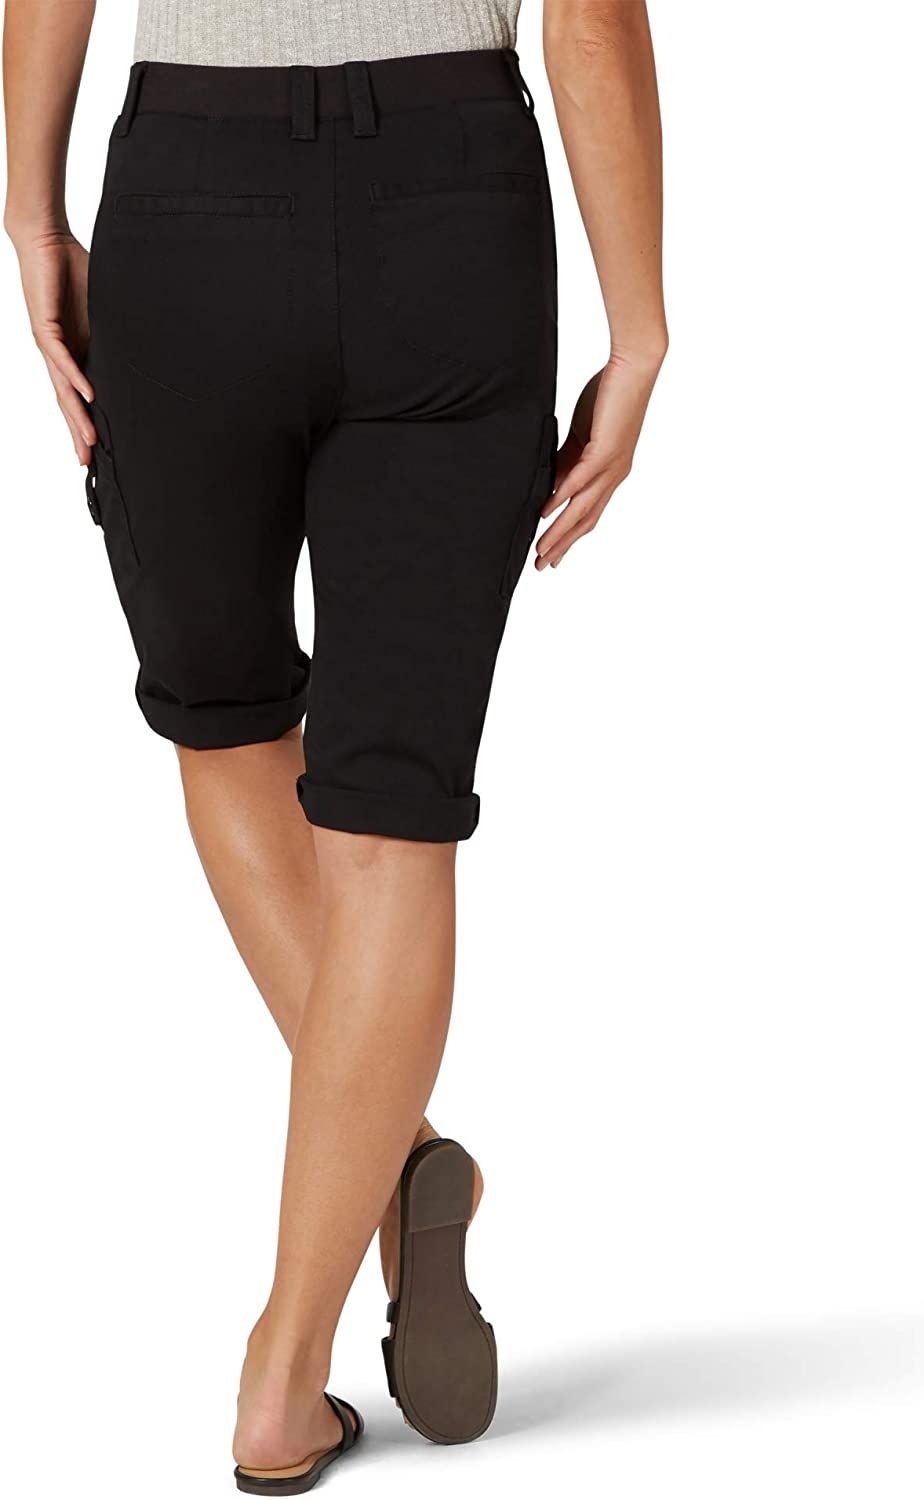 Lee Womens Flex-to-go Relaxed Fit Cargo Skimmer Capri Pant Pants